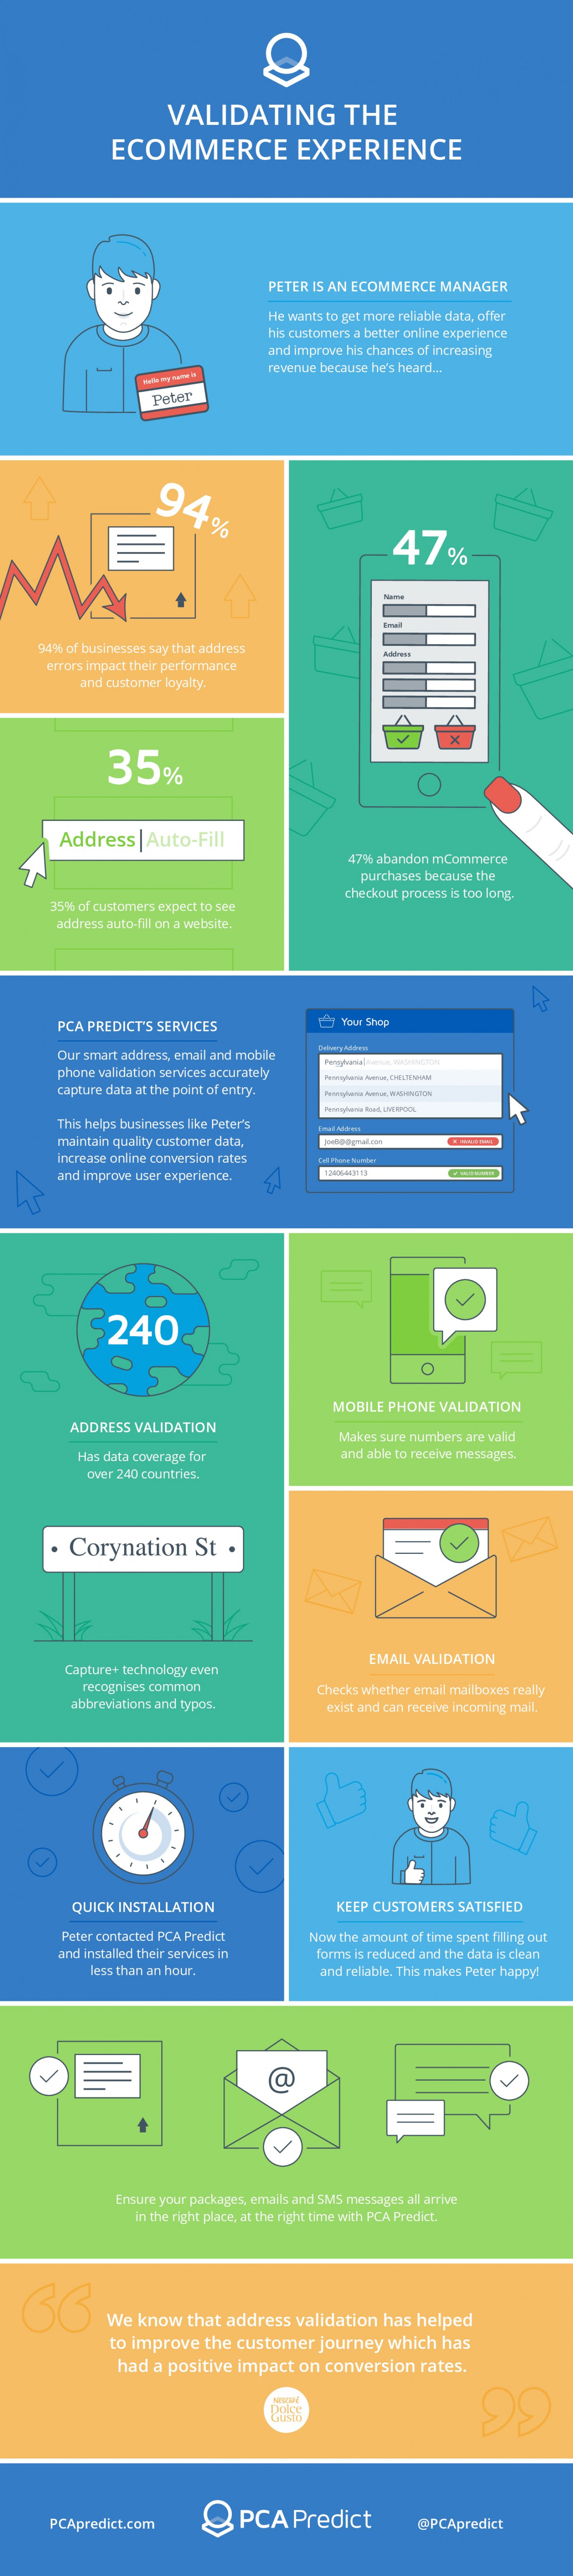 Validating the Ecommerce Experience Infographic